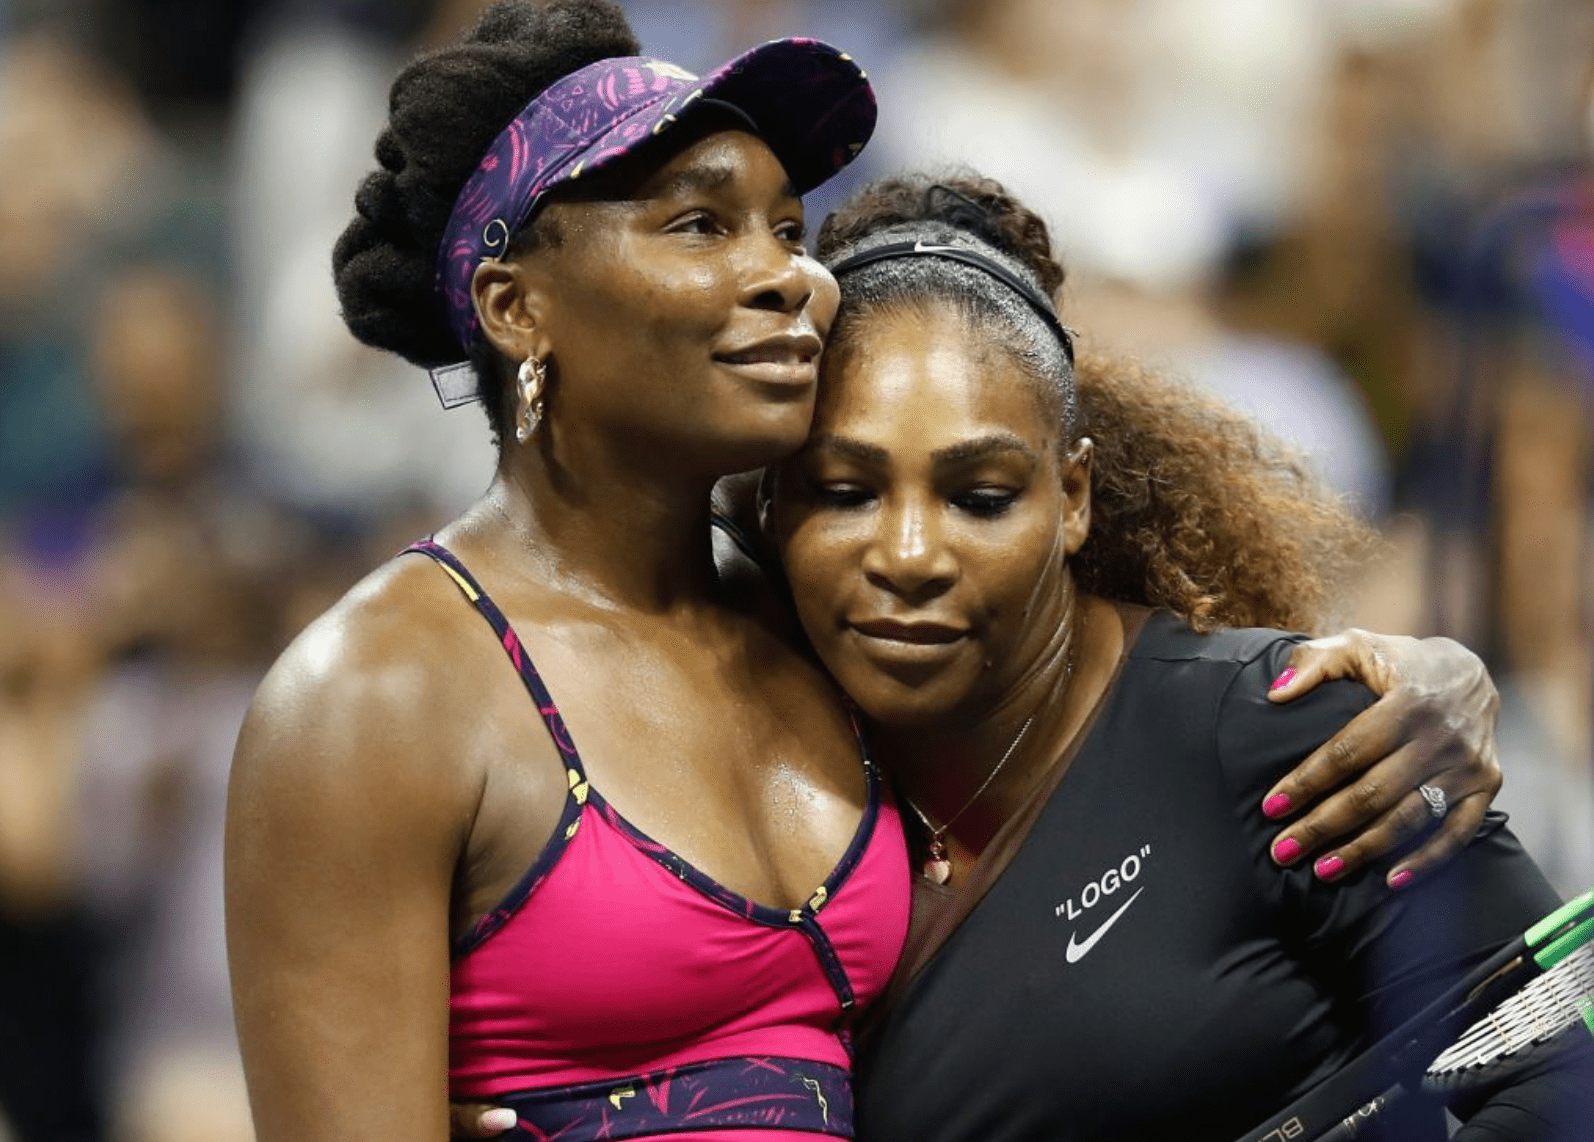 Serena Williams and sister Venus Williams share a hug after their third round match in the US Open on August 2018. | Source: Getty Images